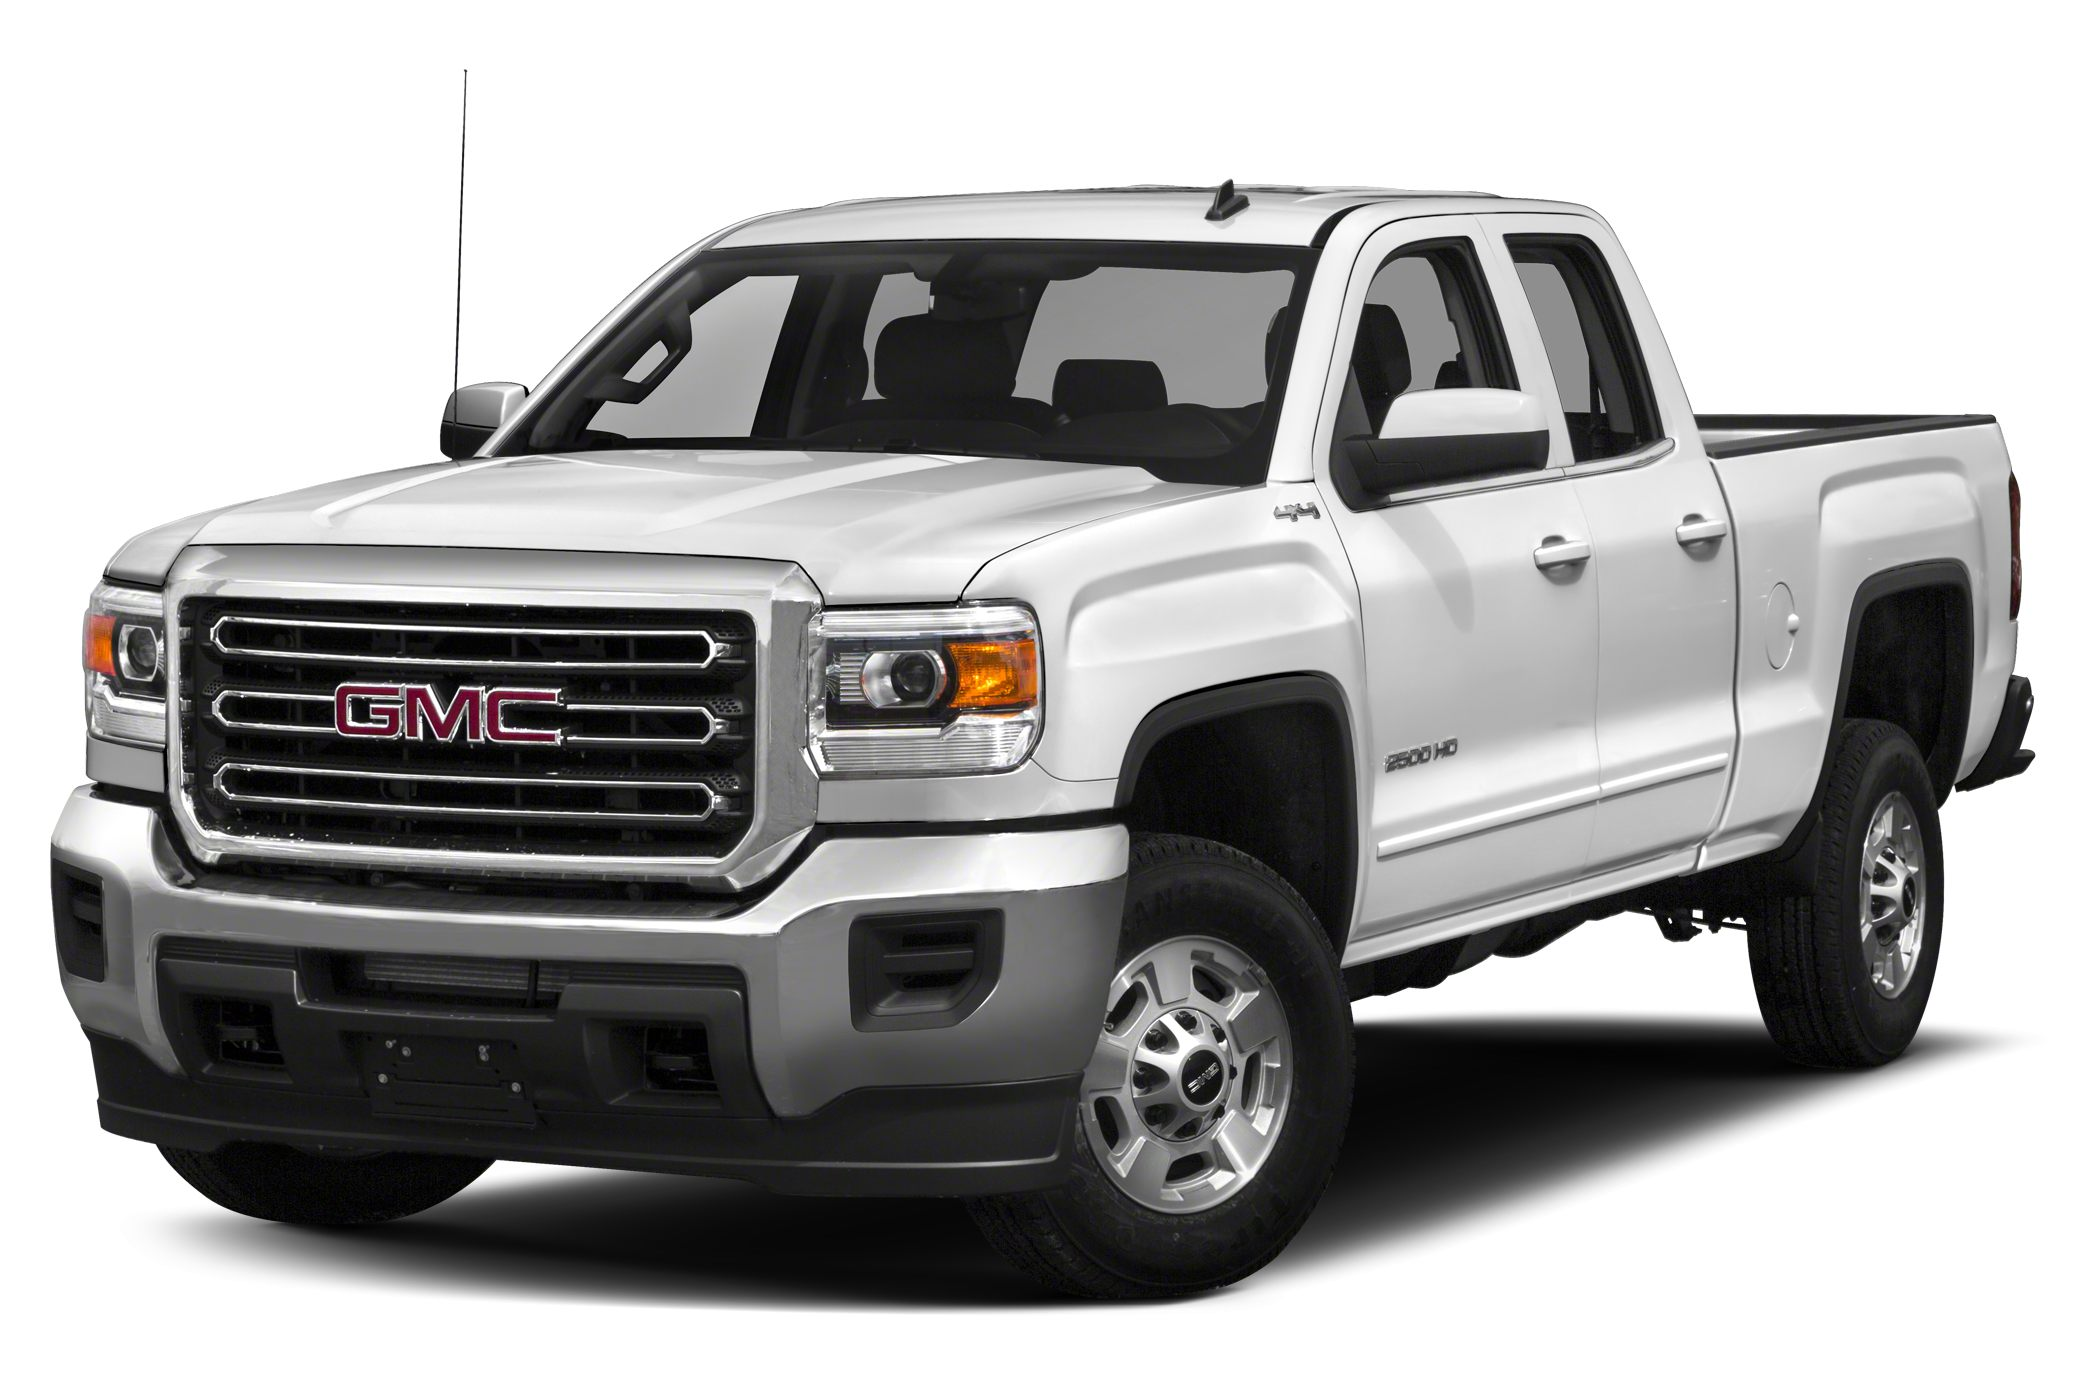 2015 GMC Sierra 2500 SLE Crew Cab Pickup for sale in Beckley for $51,285 with 0 miles.